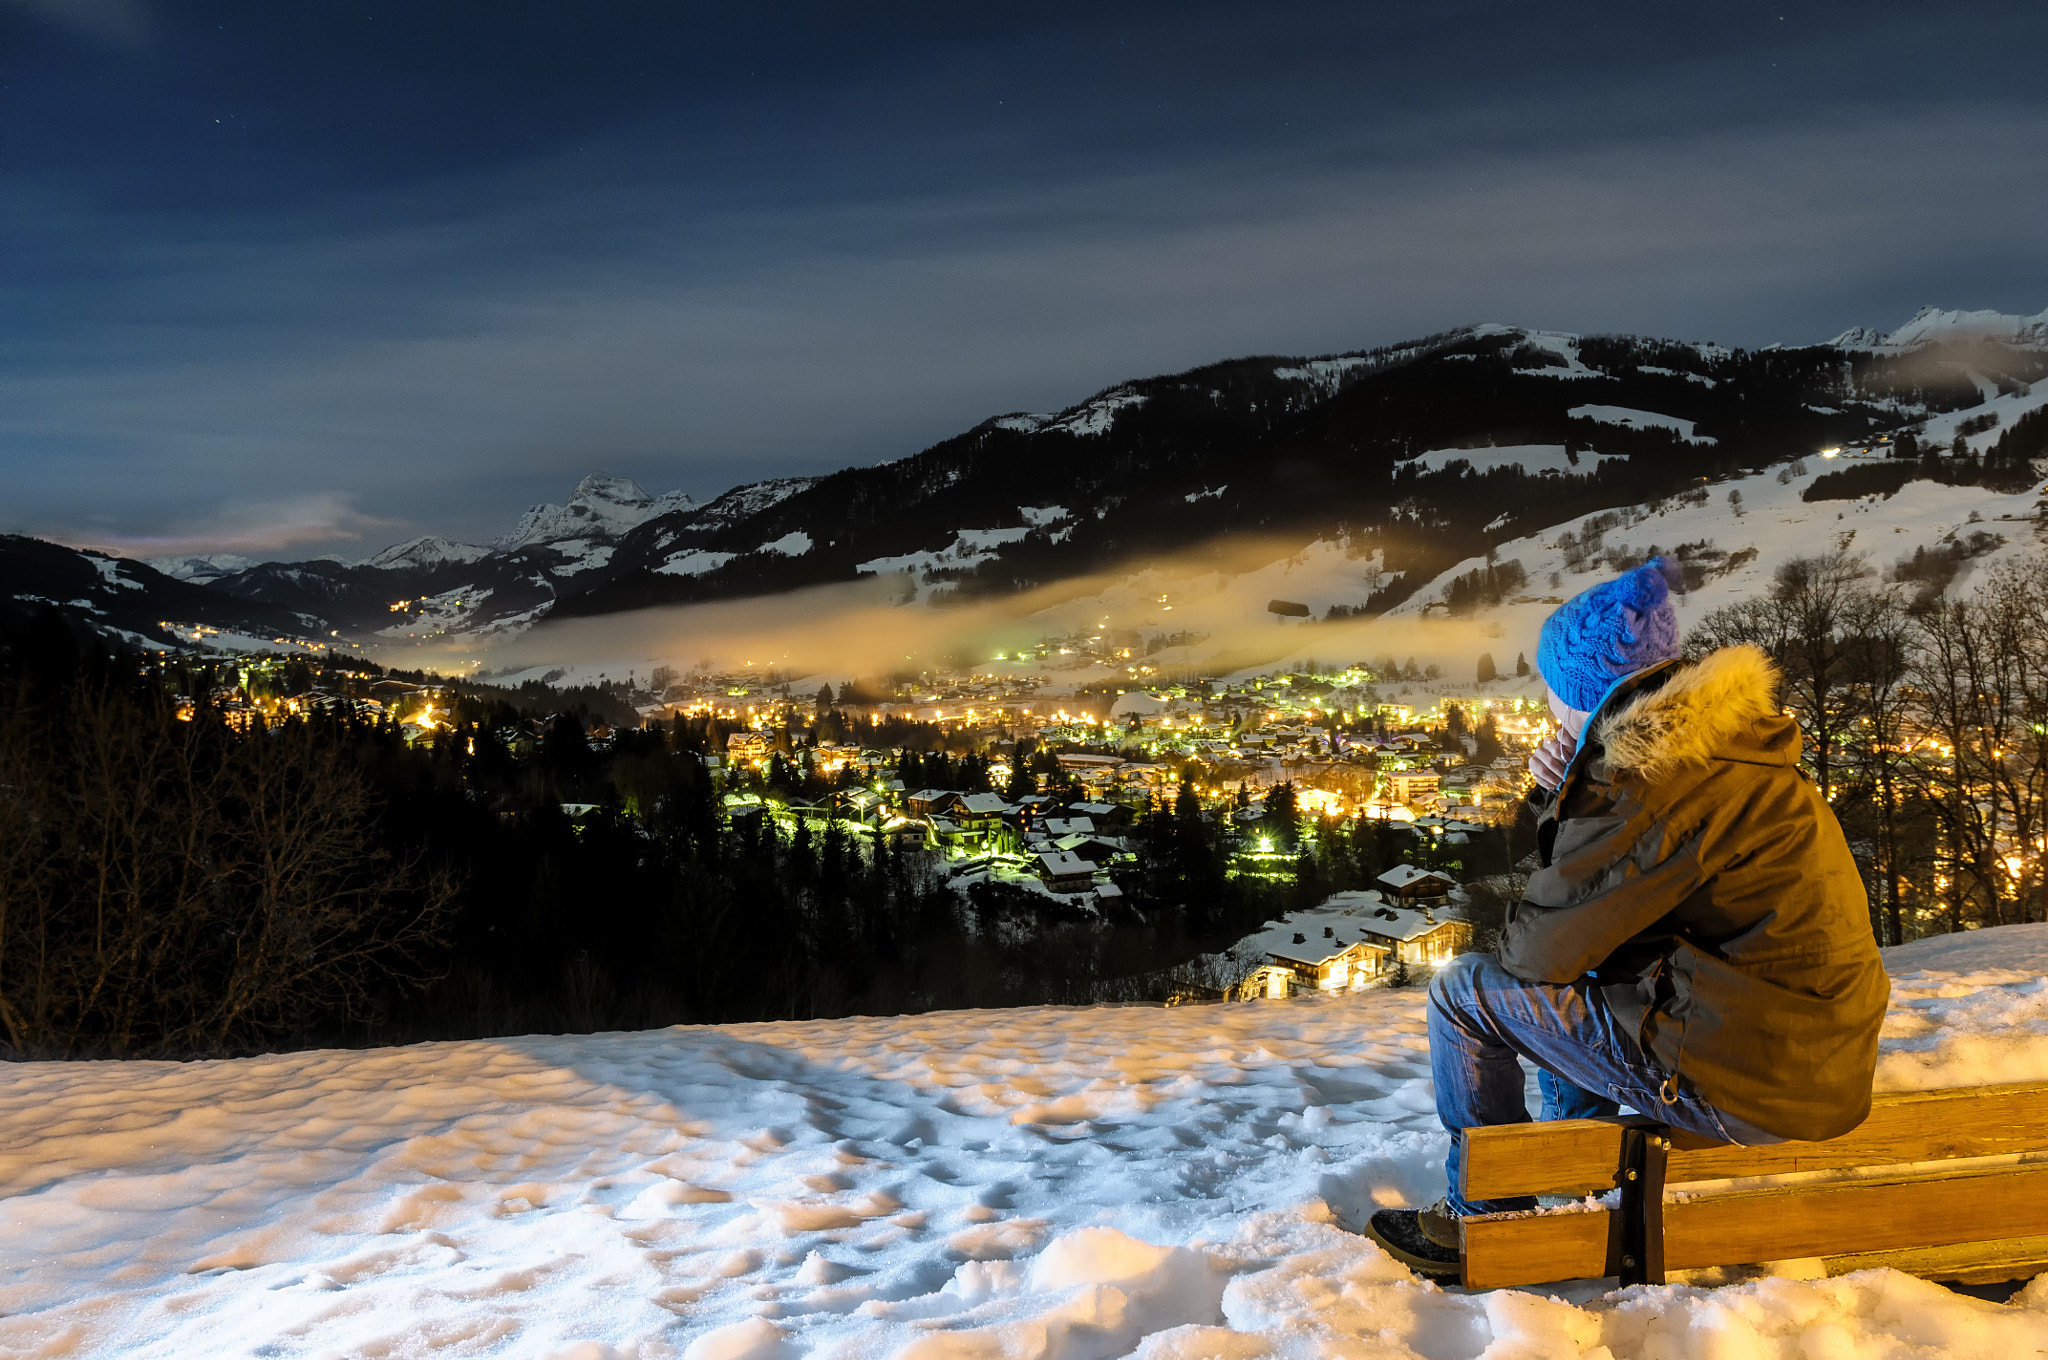 Photograph Waiting for ski by Vincent Charvet on 500px